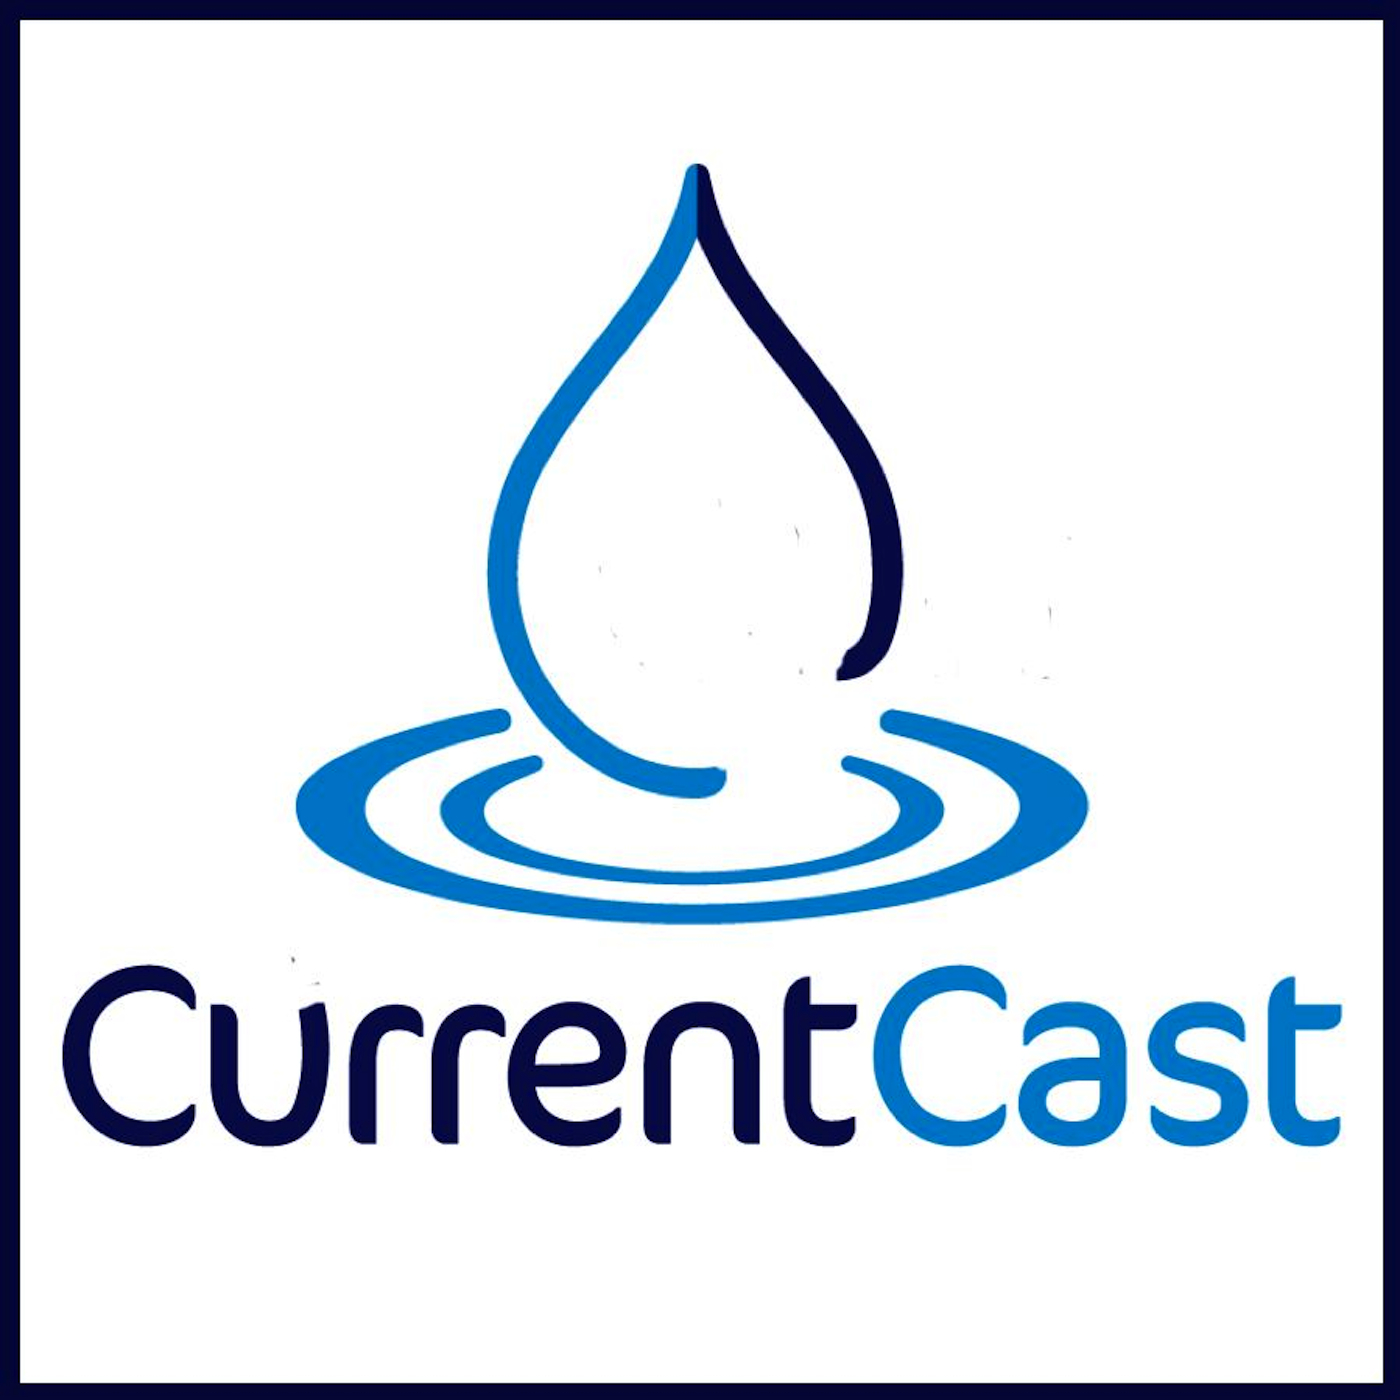 CurrentCast